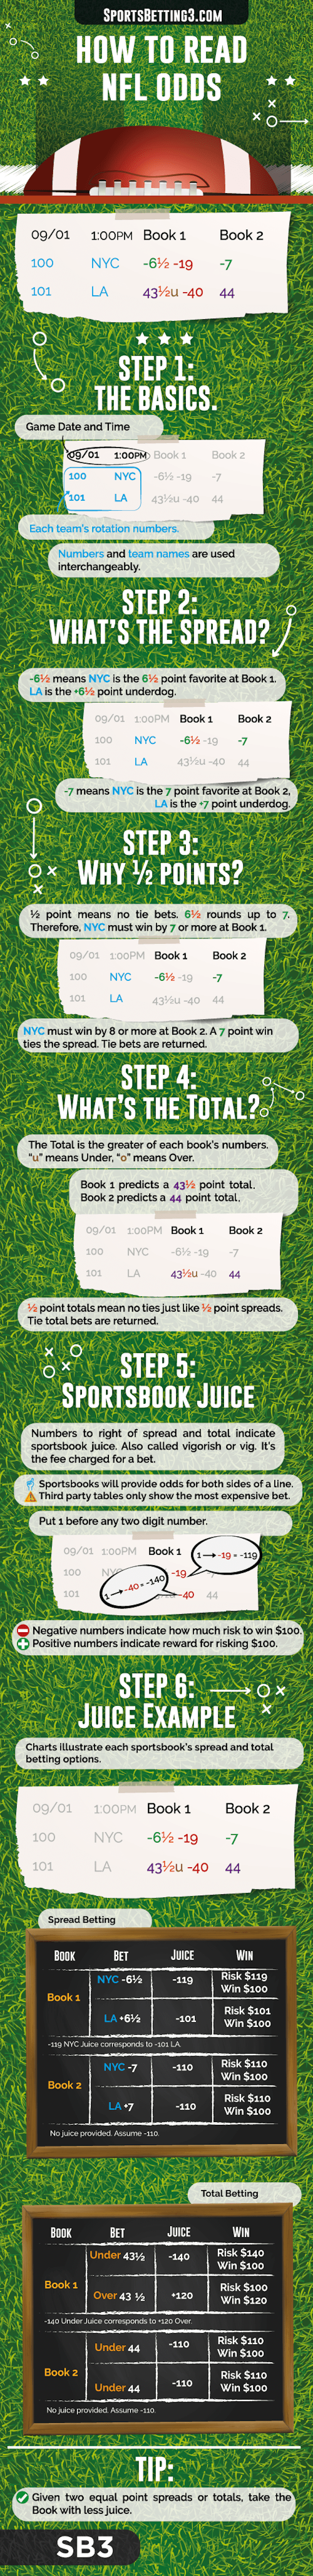 How to Read NFL Odds Image SportsBetting3.com